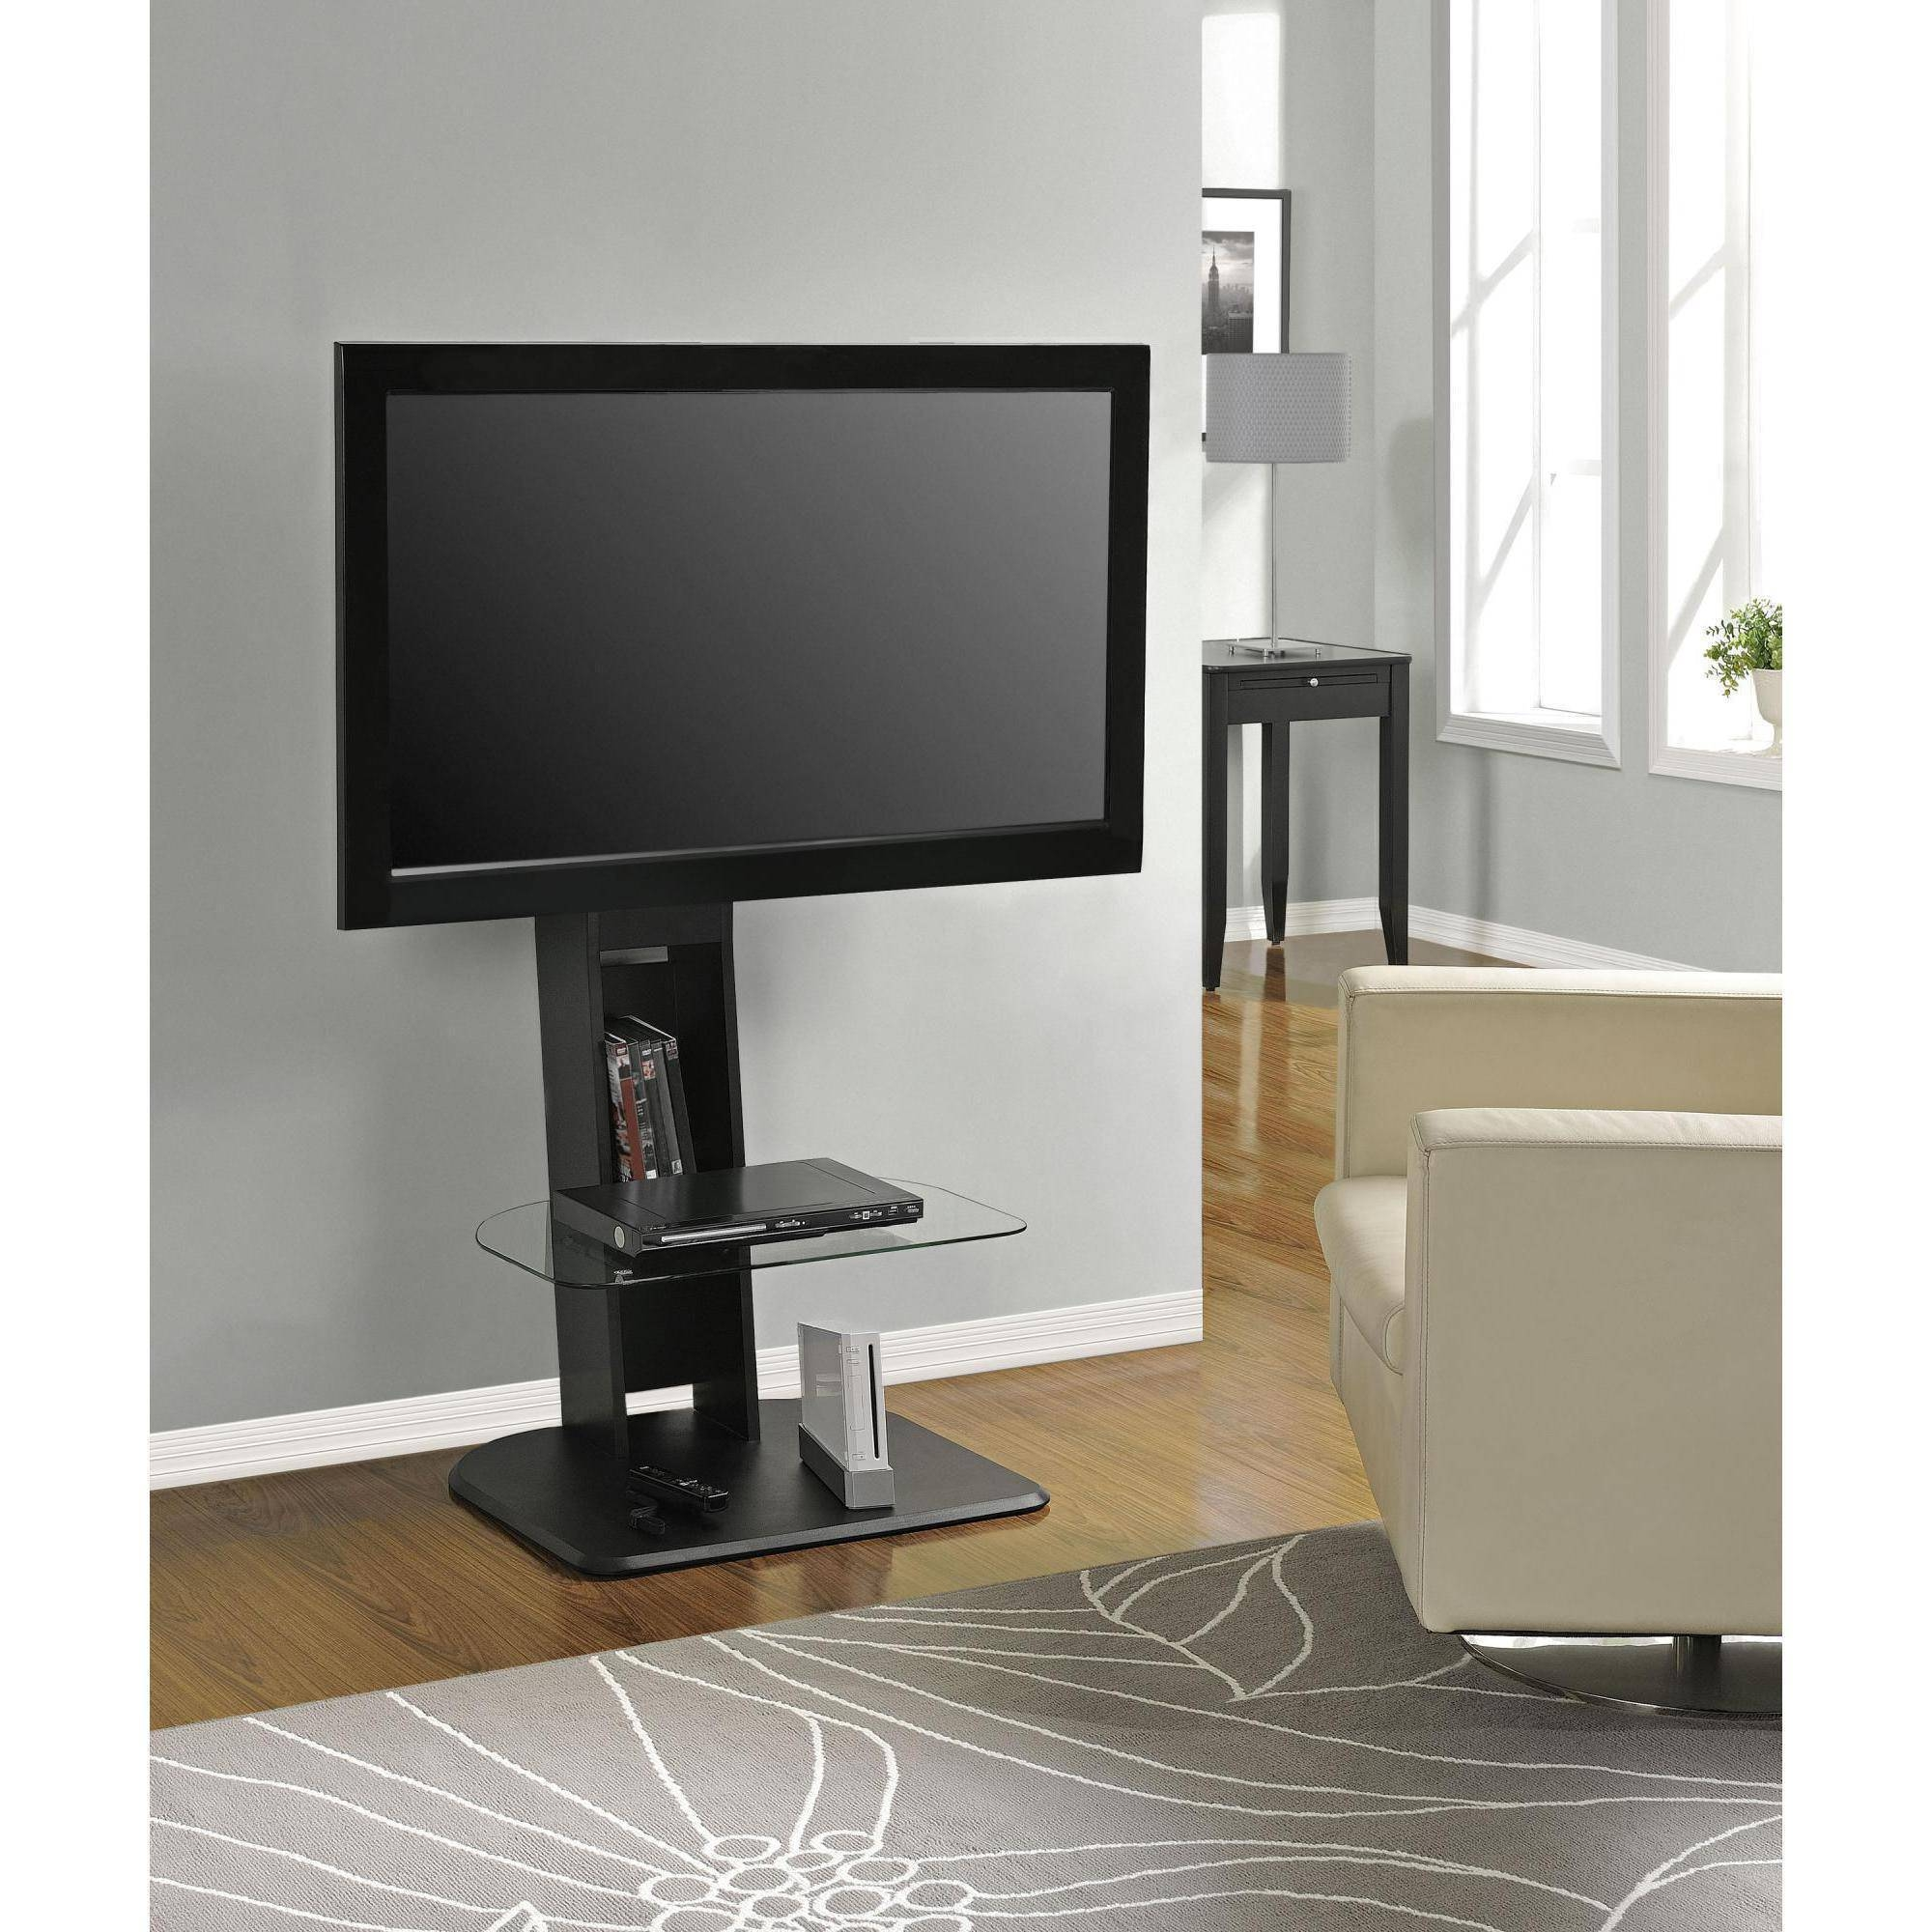 "Ameriwood Home Galaxy Tv Stand With Mount For Tvs Up To 50"", Black for Emerson Tv Stands (Image 3 of 15)"